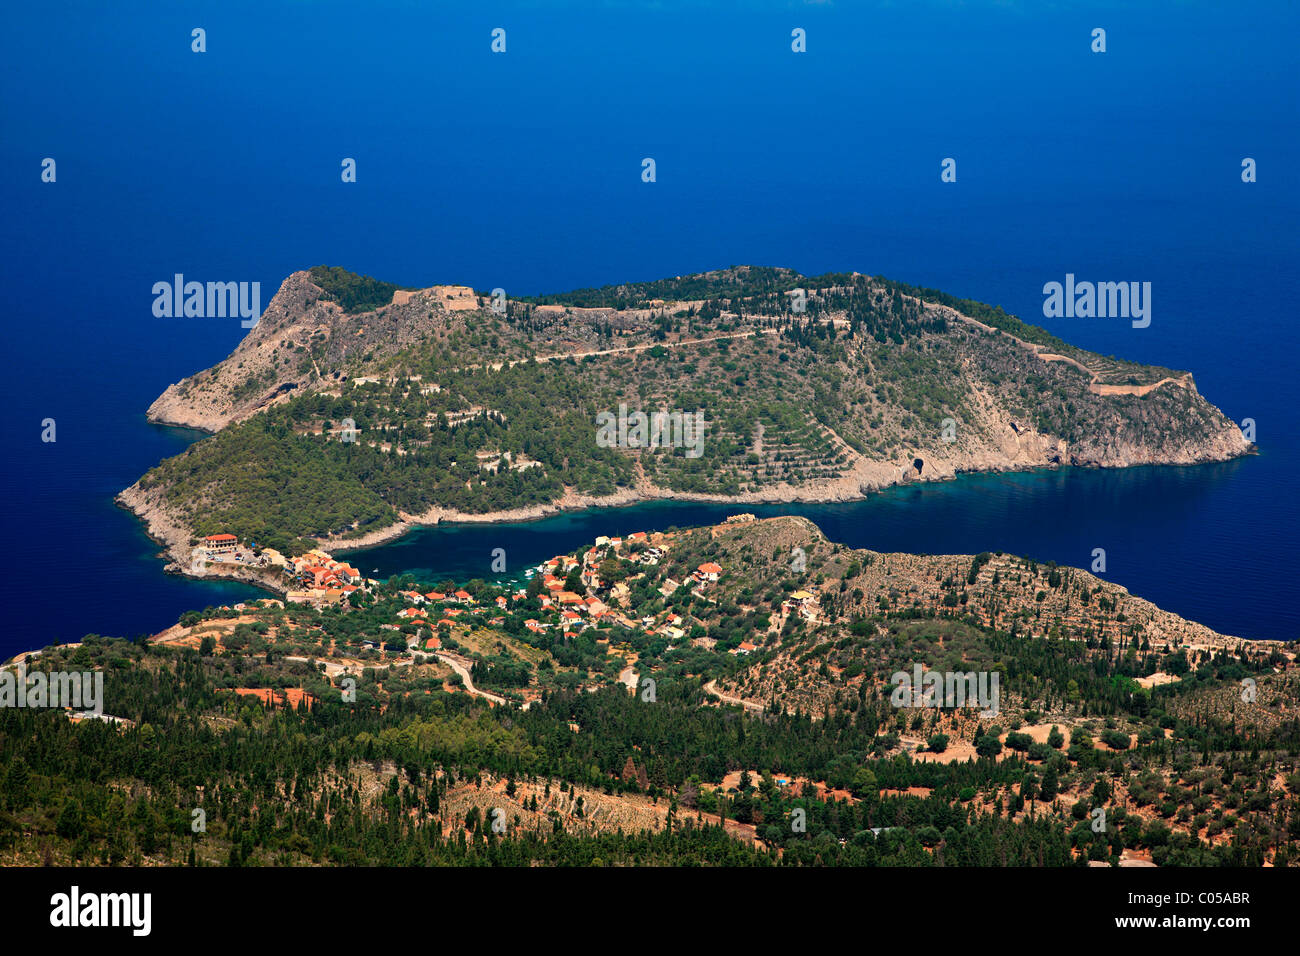 Assos (or 'Asos') one of the most beautiful villages of Kefalonia, with its castle on top of the small peninsula. - Stock Image